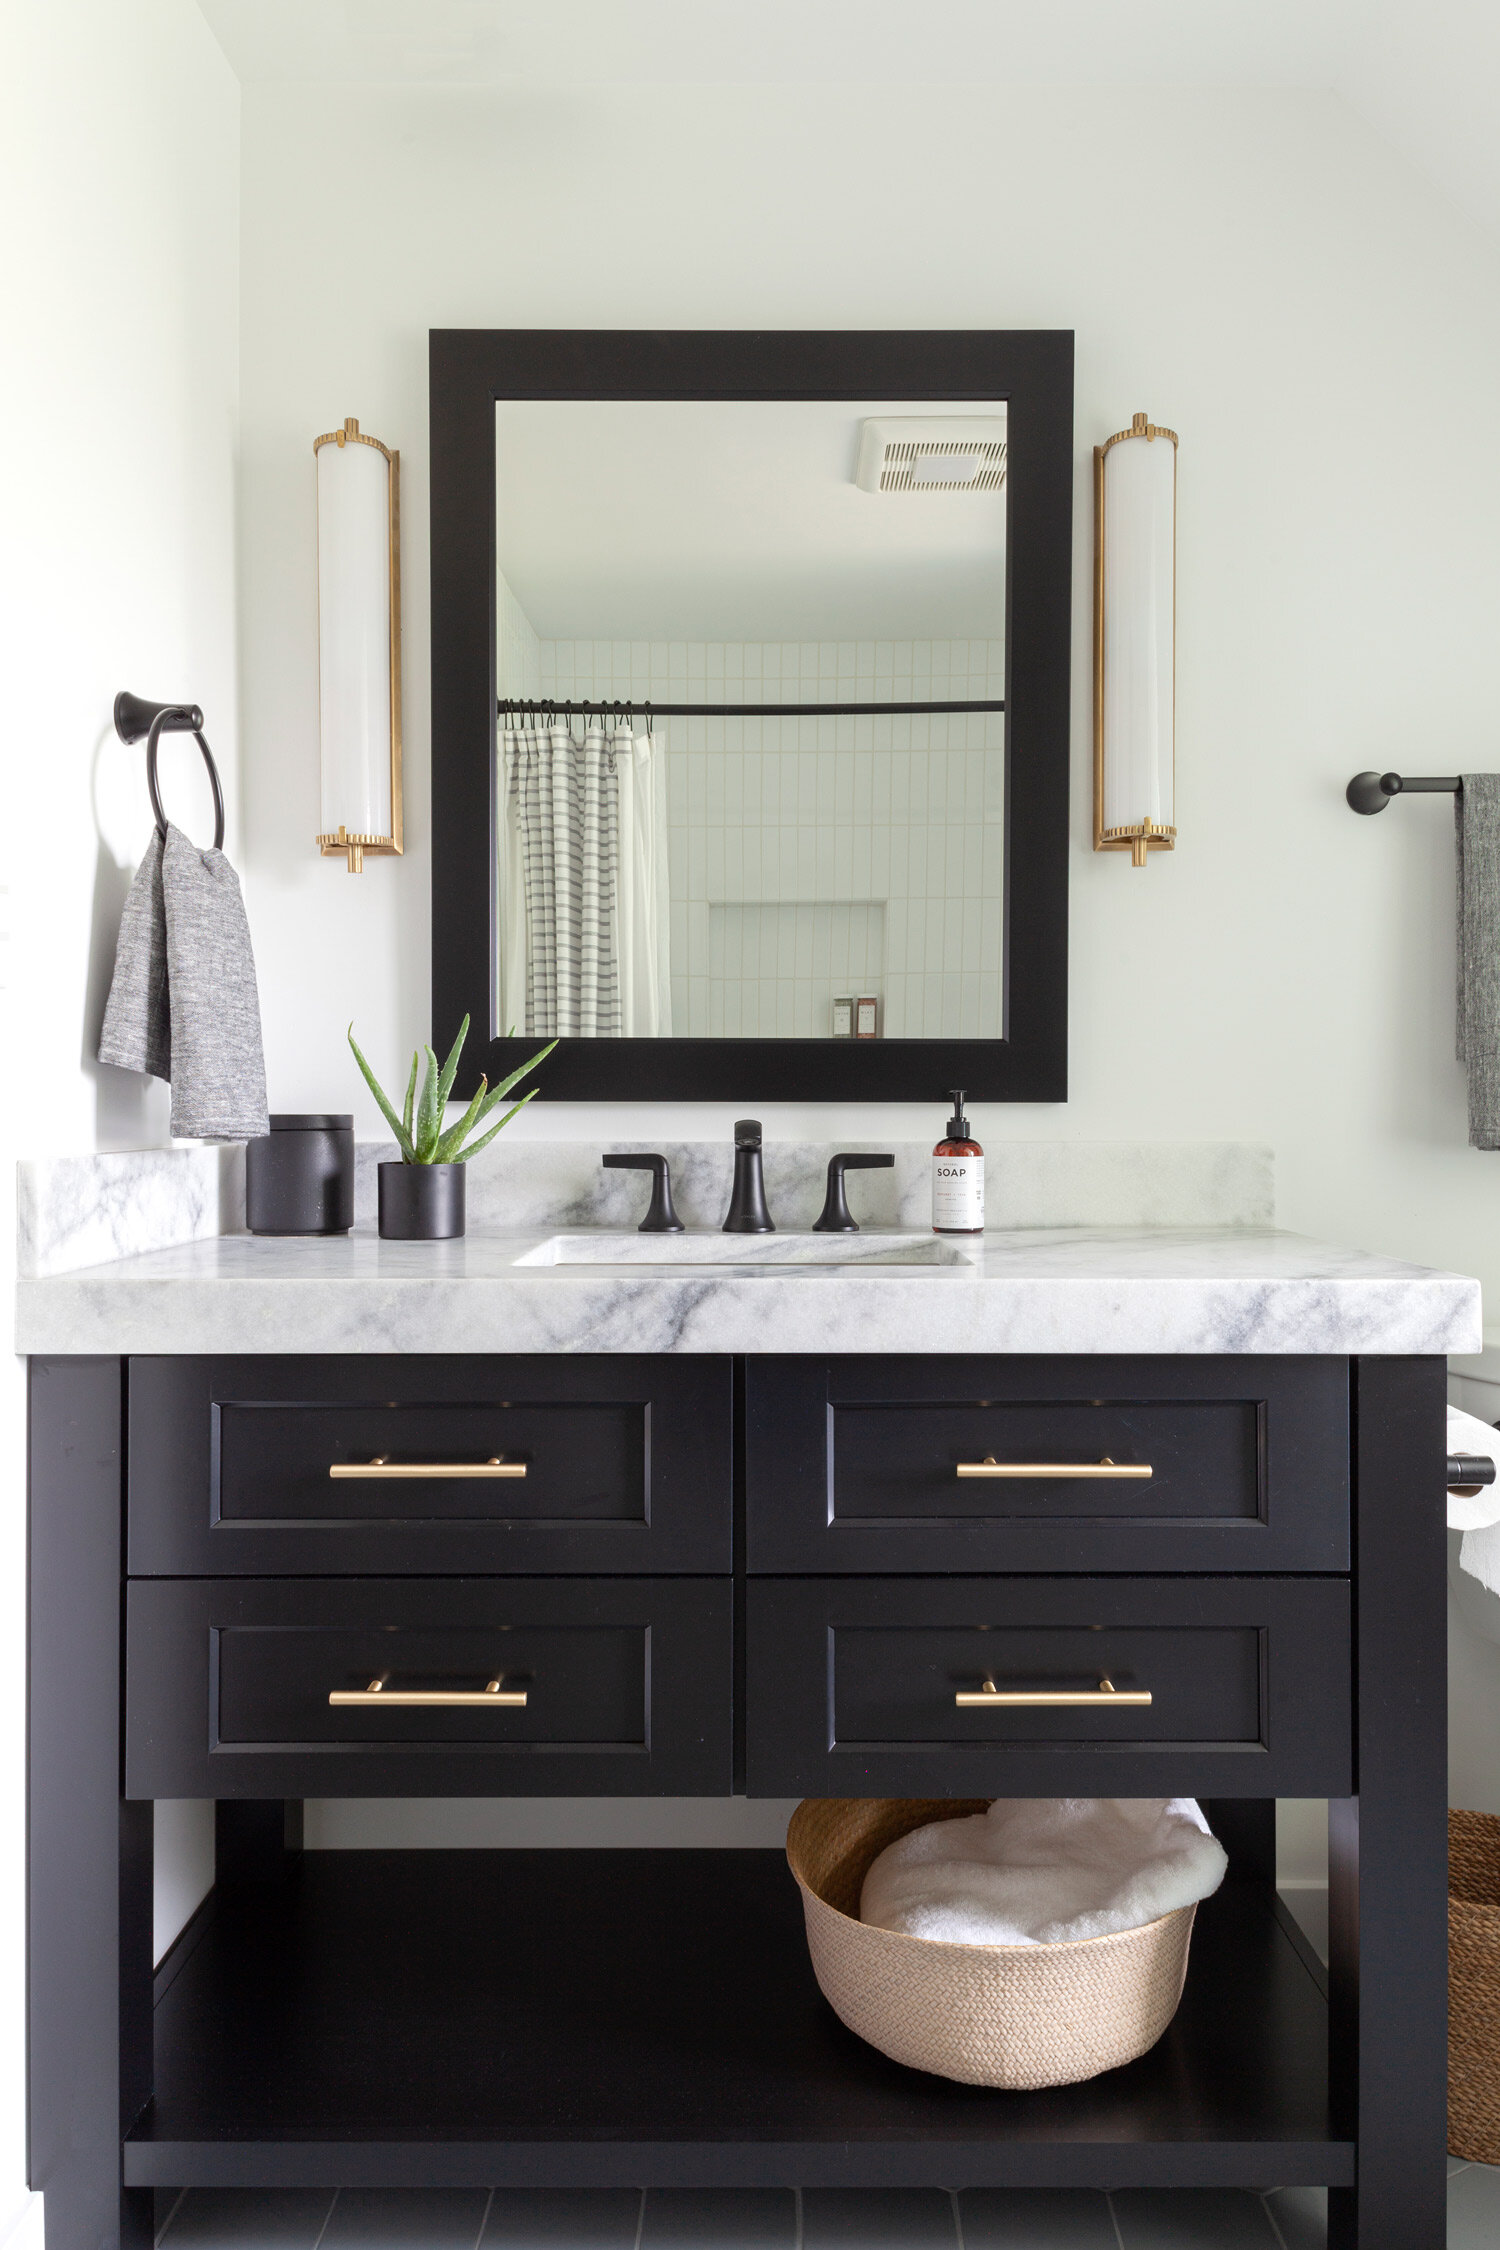 Guest Bath Offering An Urban Oasis The Kitchen Studio